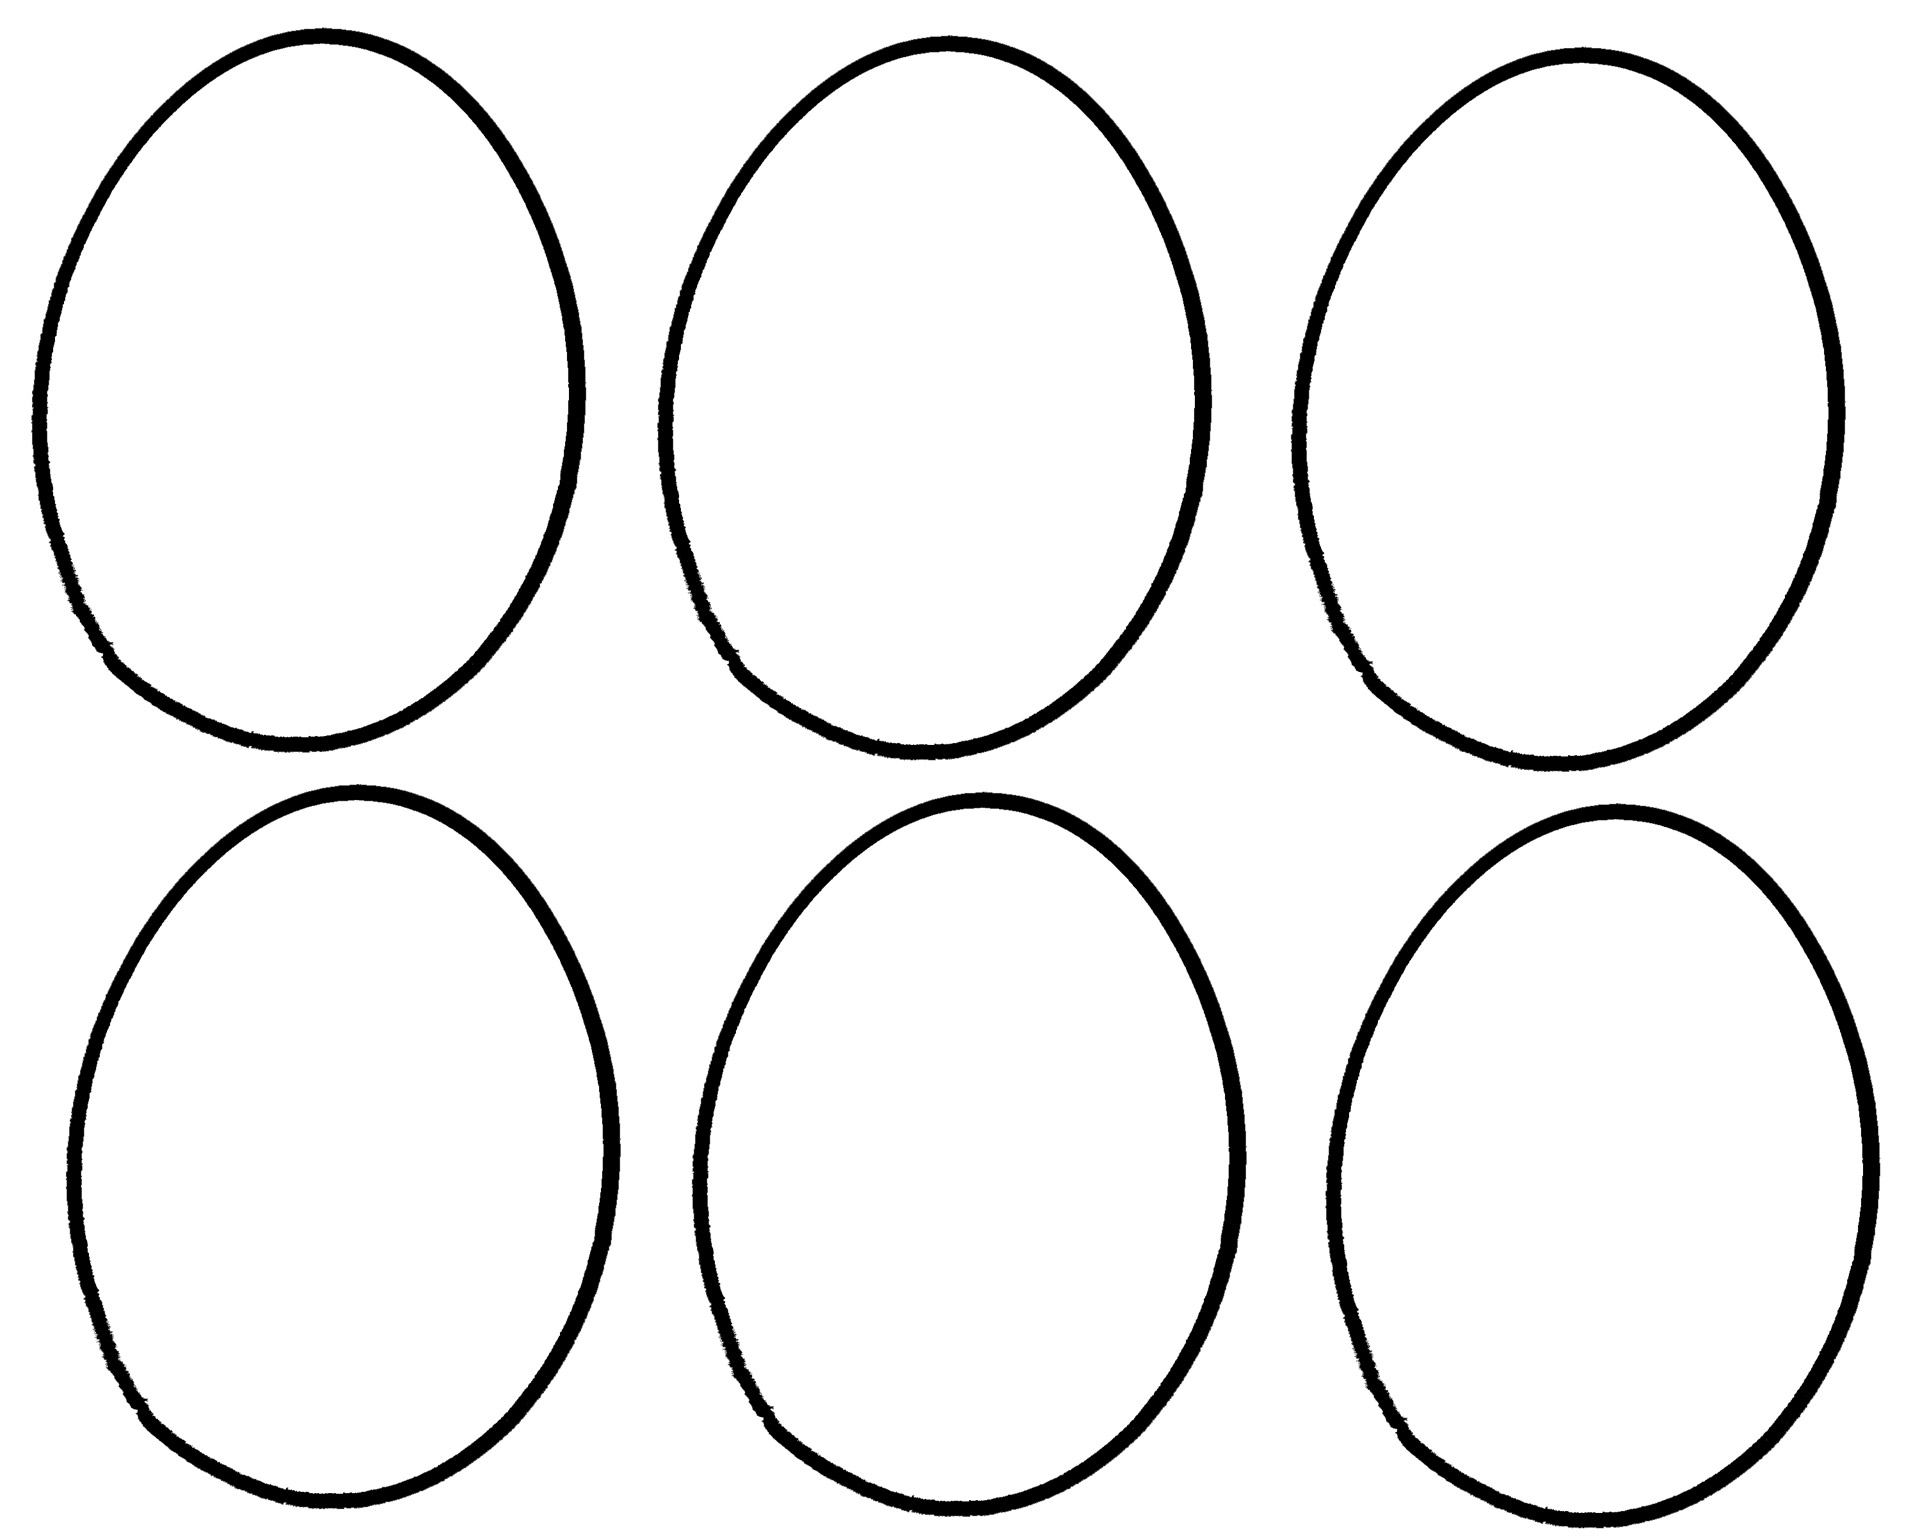 1920x1536 Easter, Egg, Chicken, Outline, Line